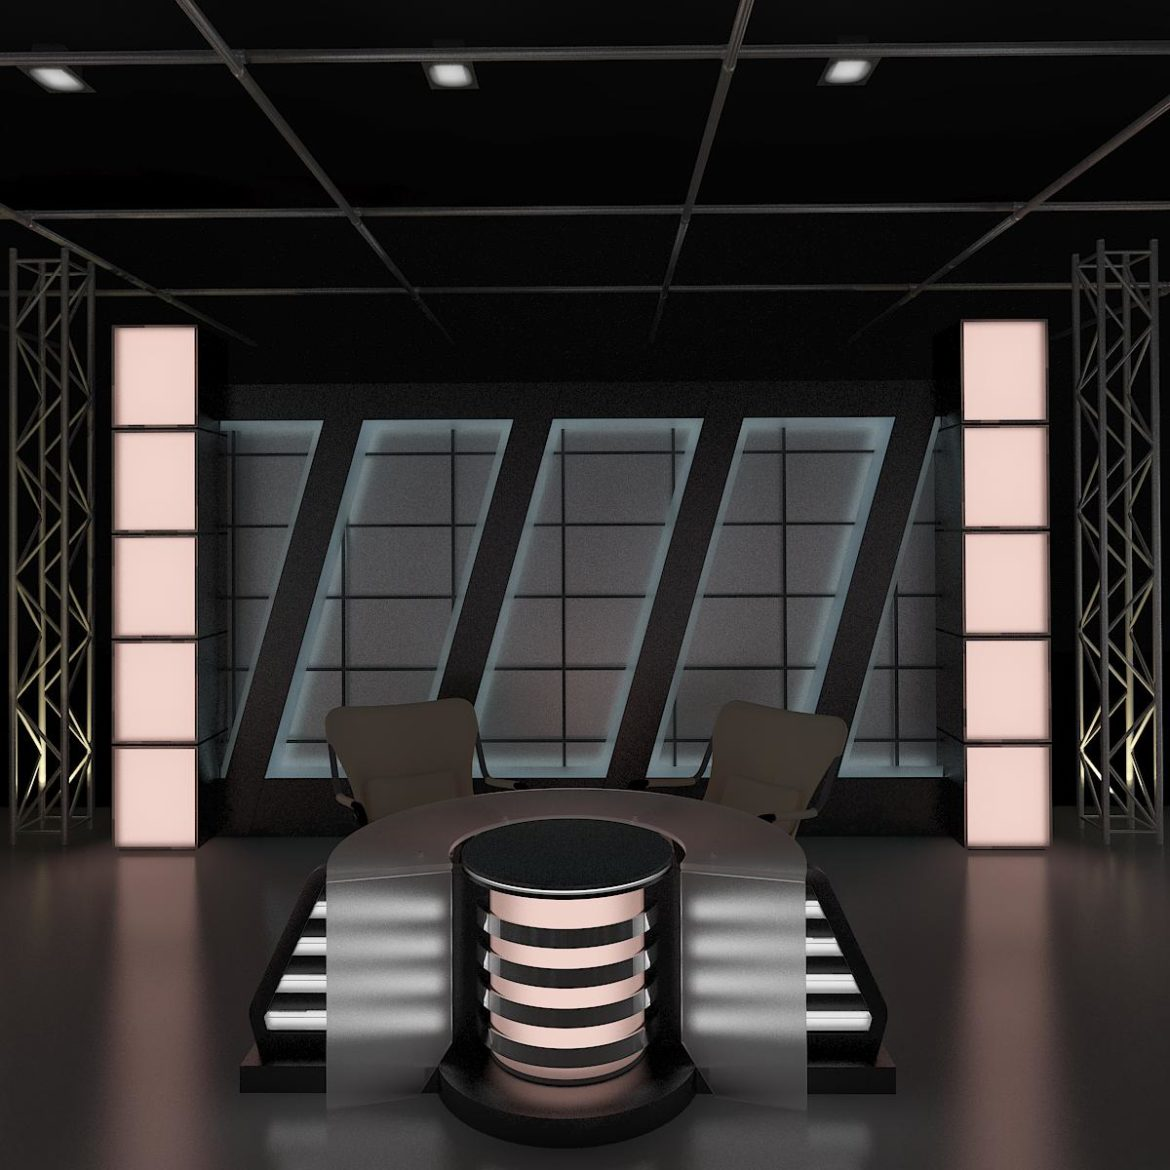 virtual tv studio news set 6 3d model 3ds c4d dxf fbx max obj 305608